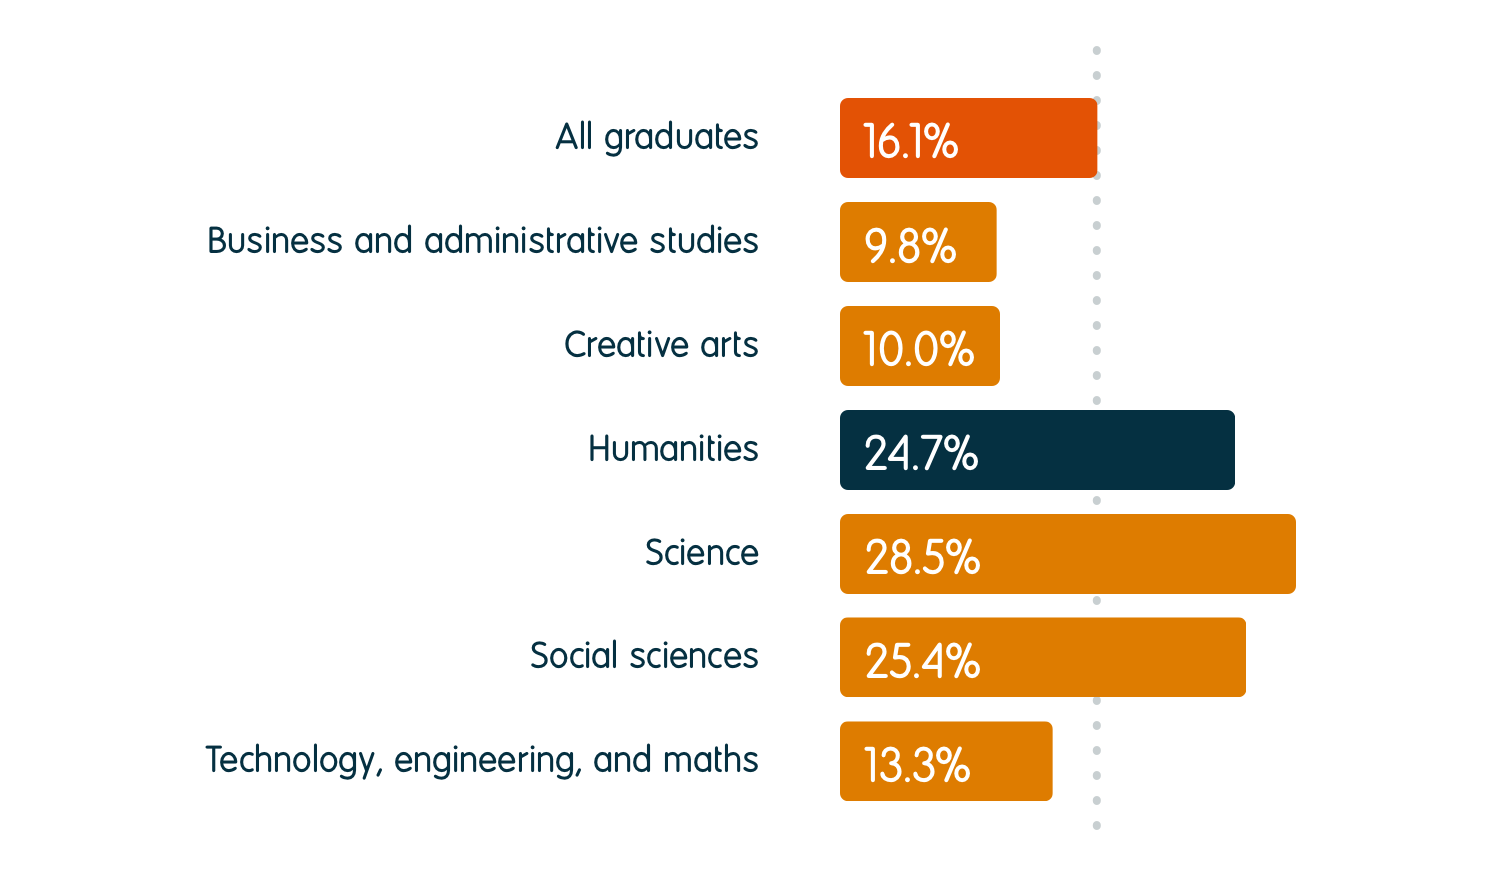 24.7% of humanities graduates were in further study six months after graduation, compared to an average of 16.1% for all graduates. For other subject groups, the percentage going into further study was 9.8% for business and administrative studies, 10.0% for creative arts, 28.5% for science, 25.4% for social sciences, and 13.3% for technology, engineering, and maths.